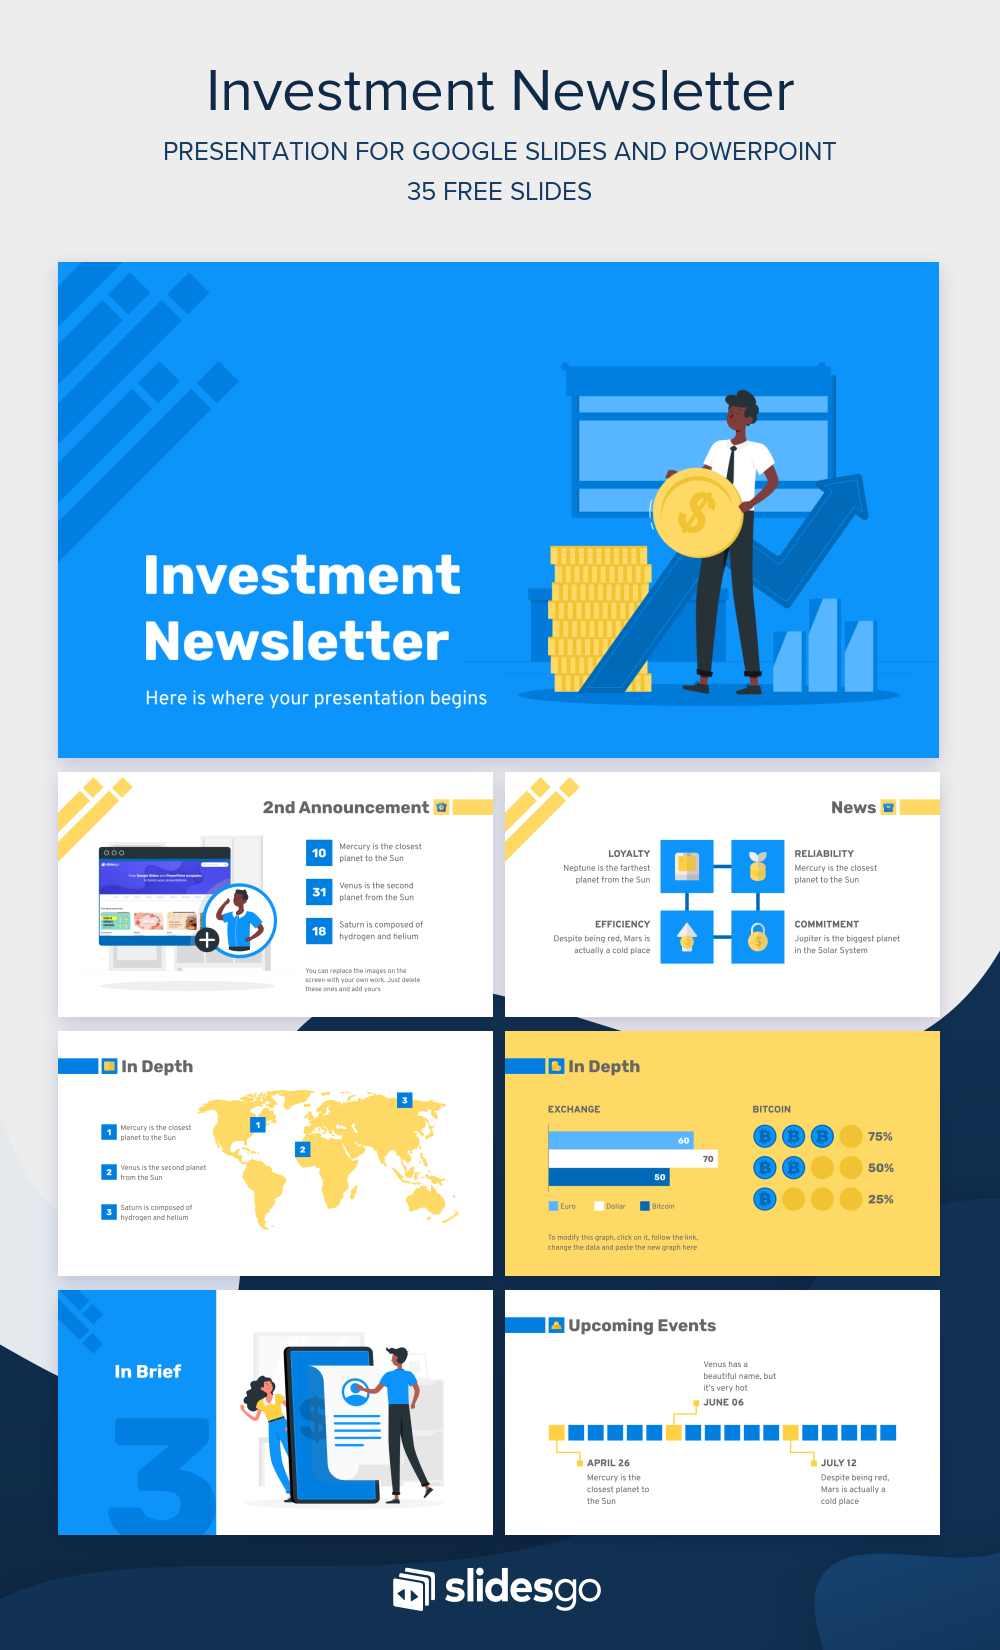 Share The Latest Pieces Of Information With Your Team With This Investment Newsletter Presentation For Goog Powerpoint Presentation Powerpoint Design Templates